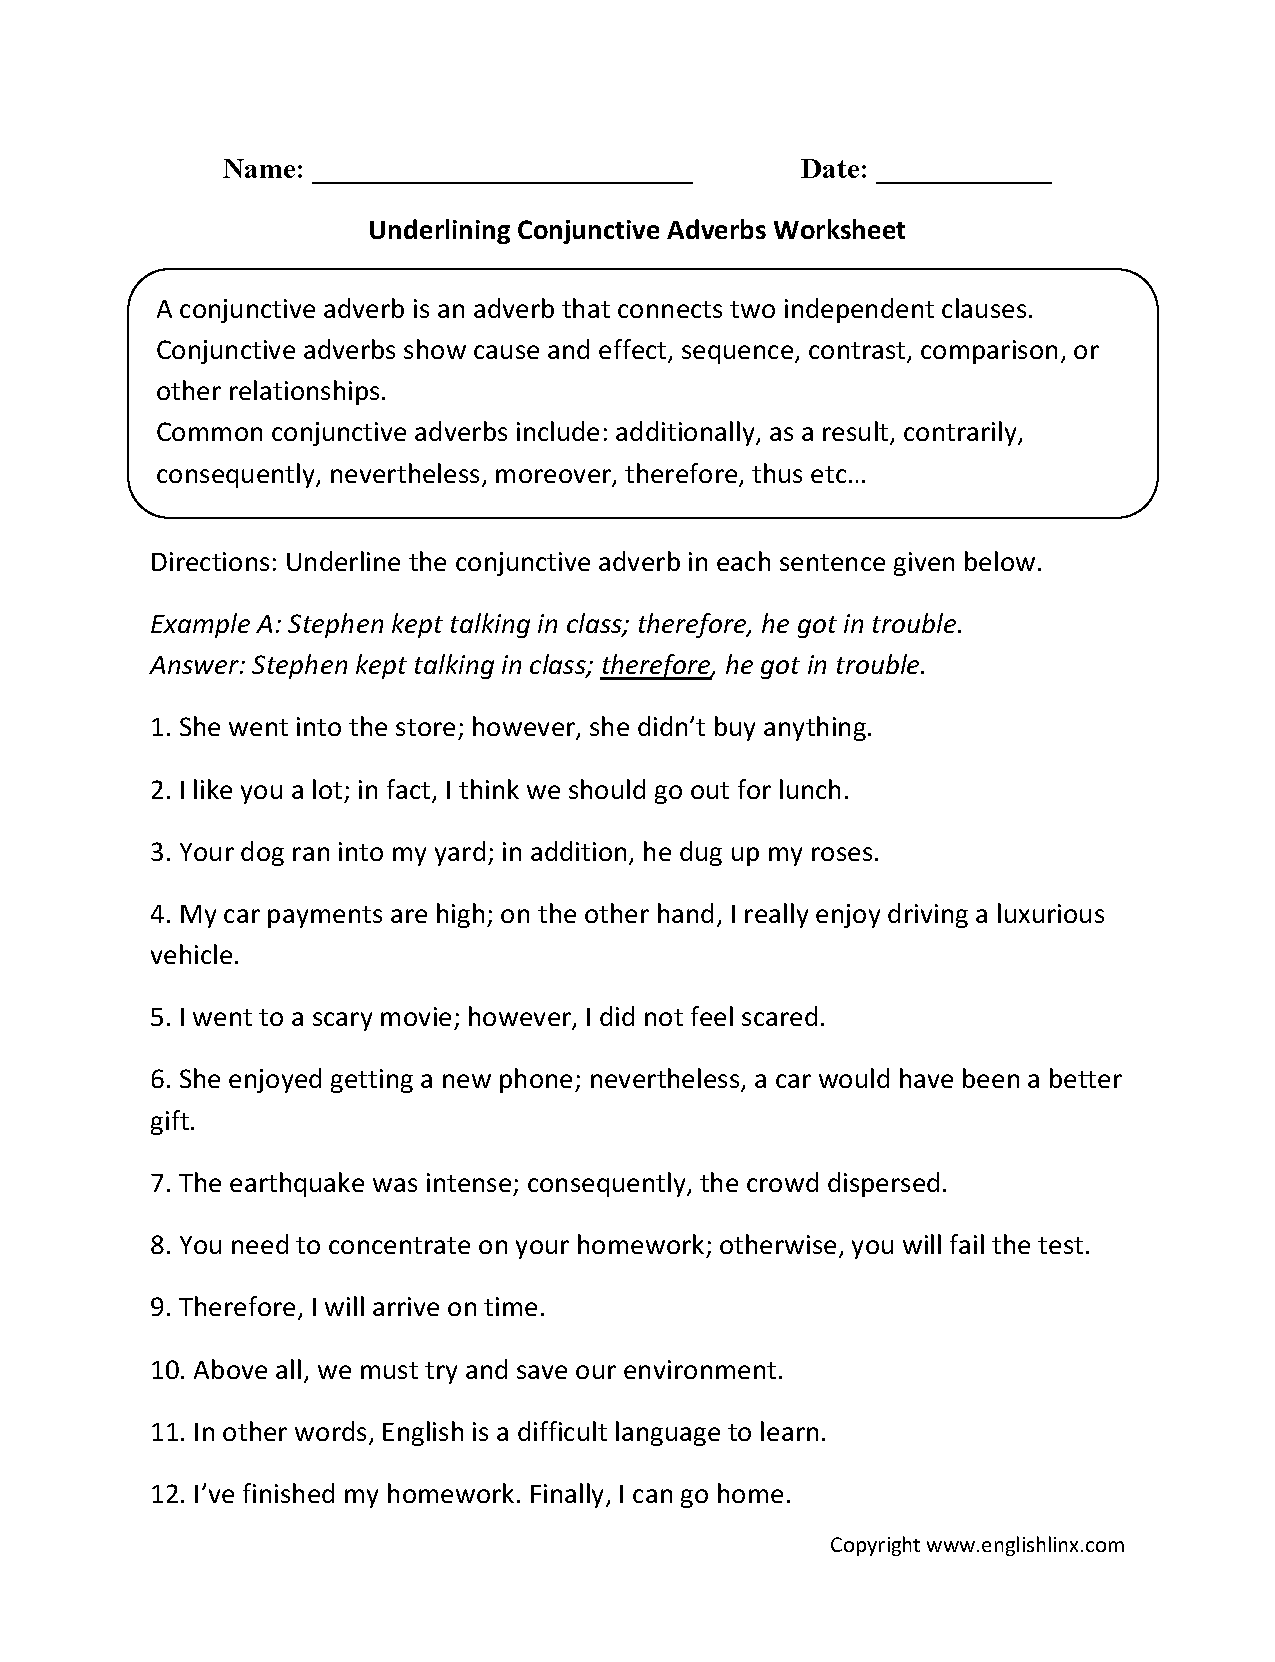 Aldiablosus  Personable Englishlinxcom  Conjunctions Worksheets With Lovable Worksheet With Beauteous Dr Mrs Vandertramp Worksheet Also Gallon Guy Worksheet In Addition Coordinates Worksheets For Kids And Fraction To A Decimal Worksheet As Well As Th Grade Science Worksheets Printable Free Additionally Maths Worksheets Grade  From Englishlinxcom With Aldiablosus  Lovable Englishlinxcom  Conjunctions Worksheets With Beauteous Worksheet And Personable Dr Mrs Vandertramp Worksheet Also Gallon Guy Worksheet In Addition Coordinates Worksheets For Kids From Englishlinxcom